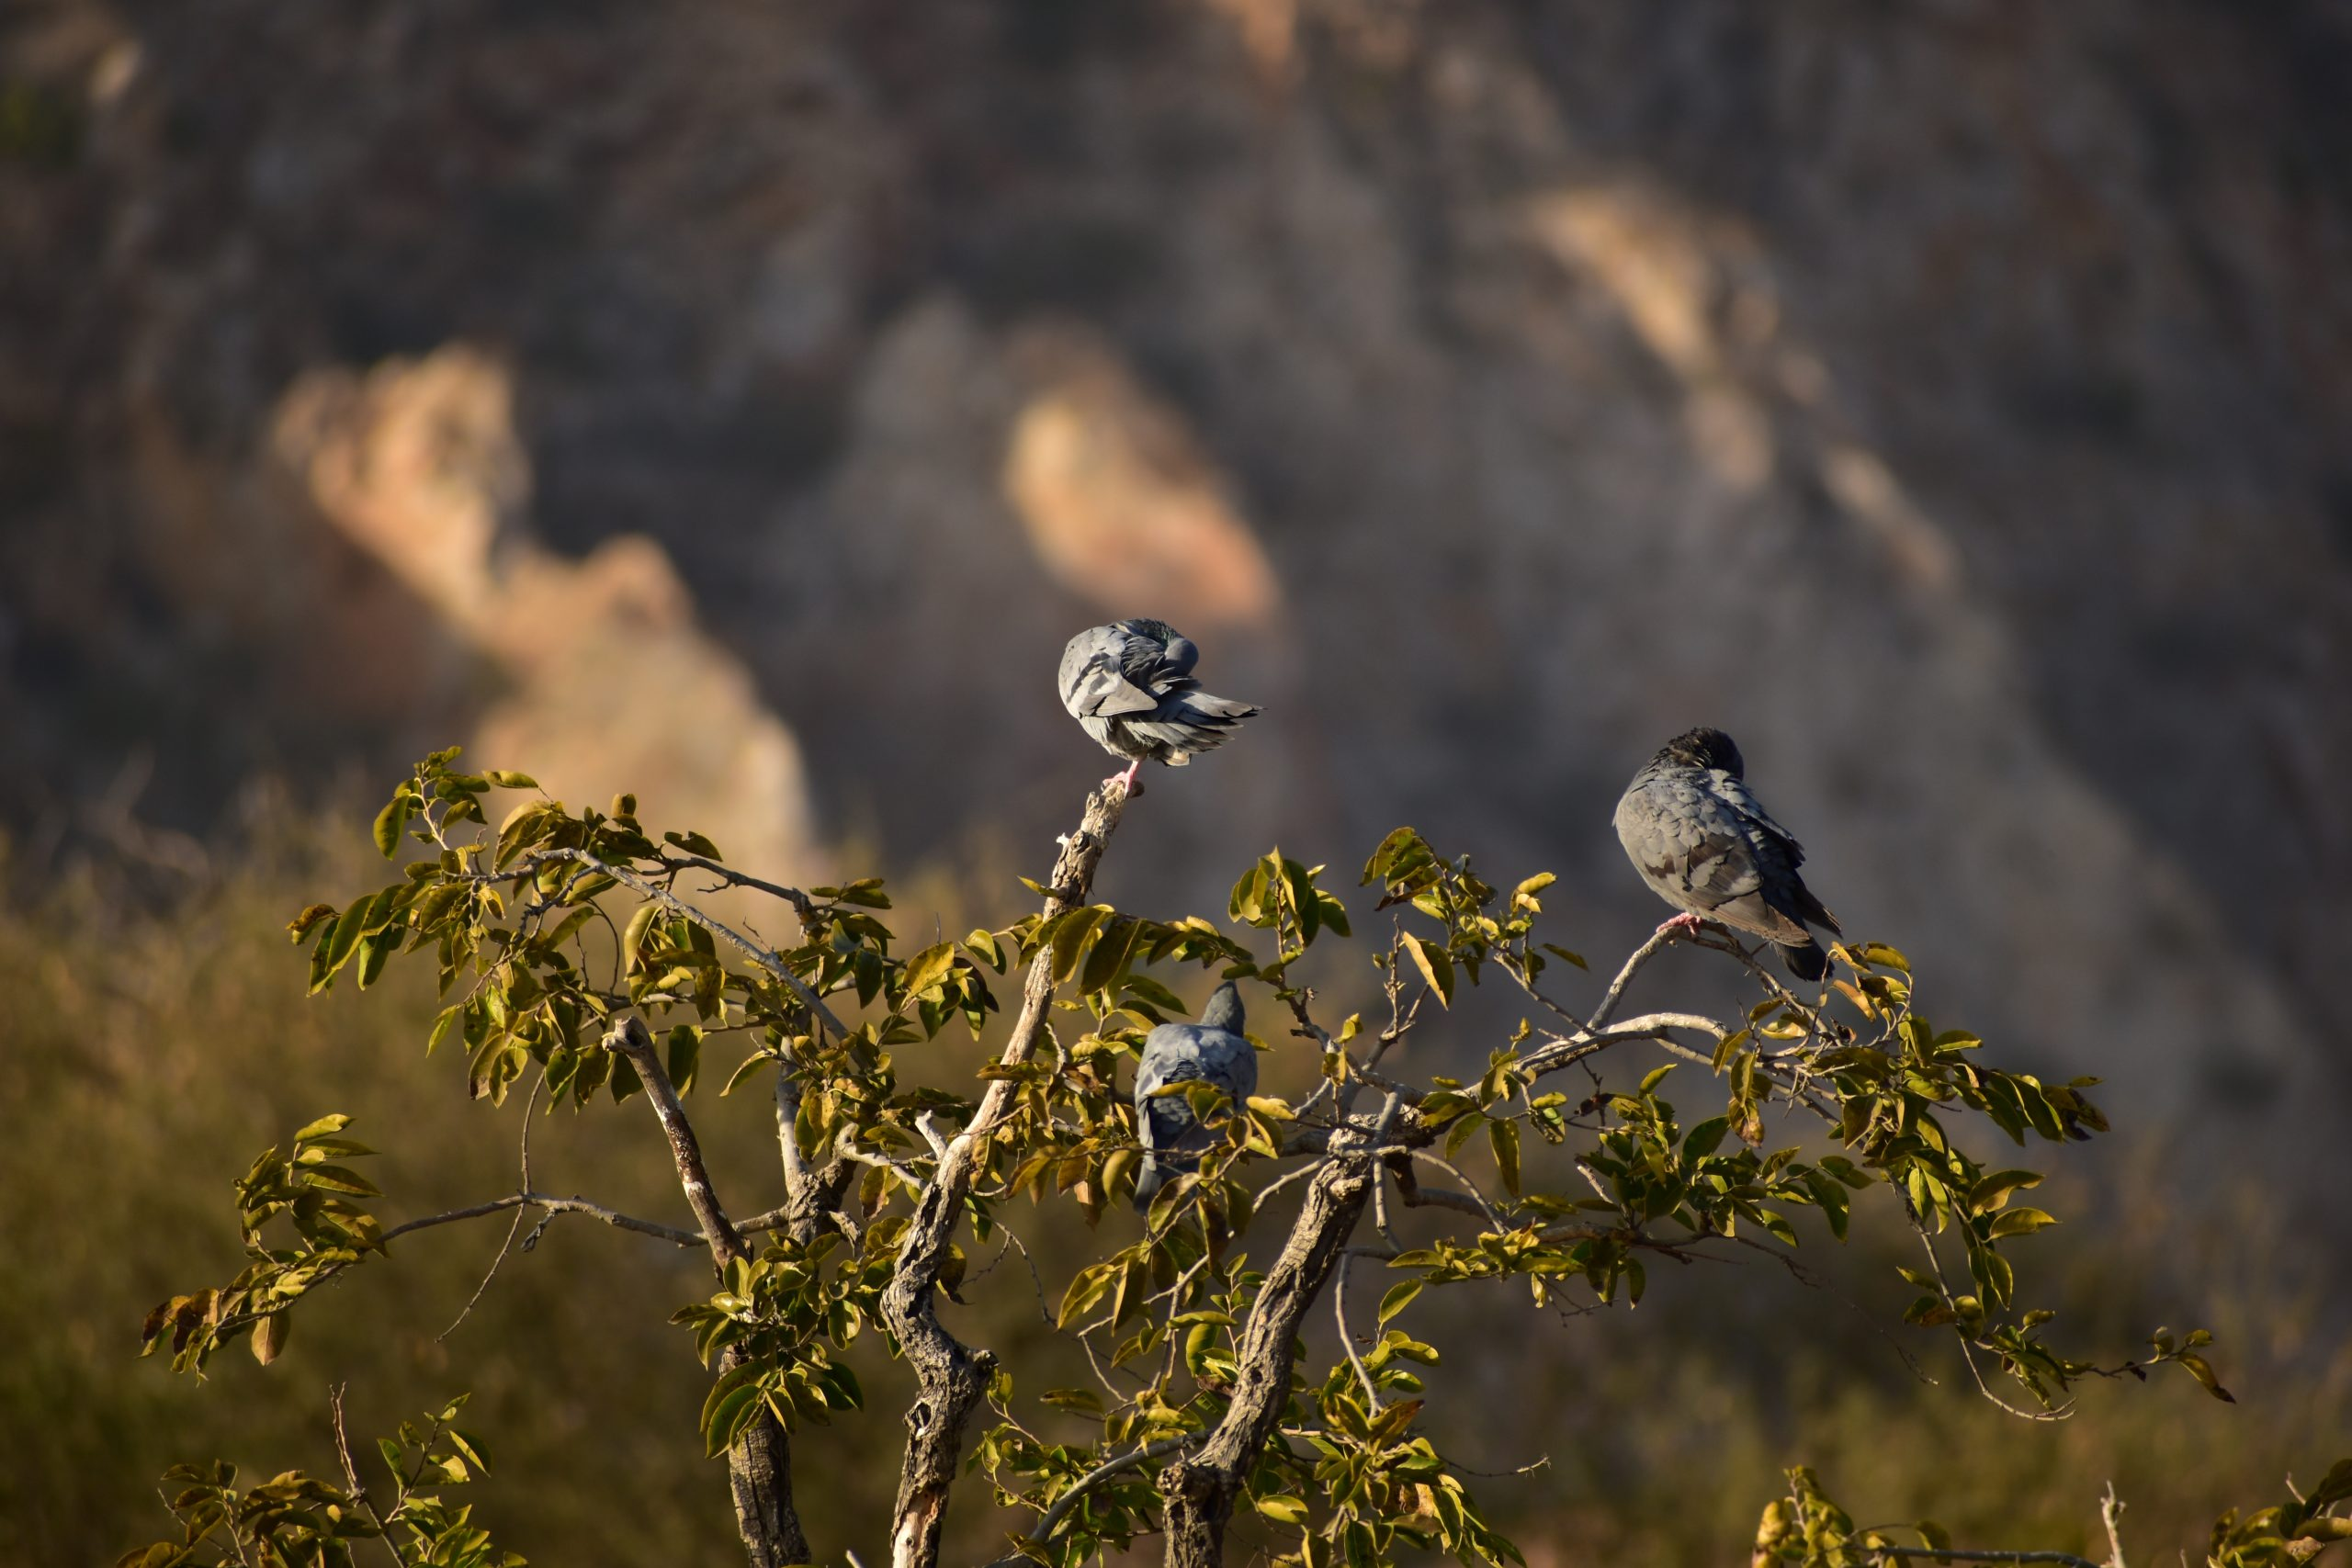 Pigeons on top of a tree